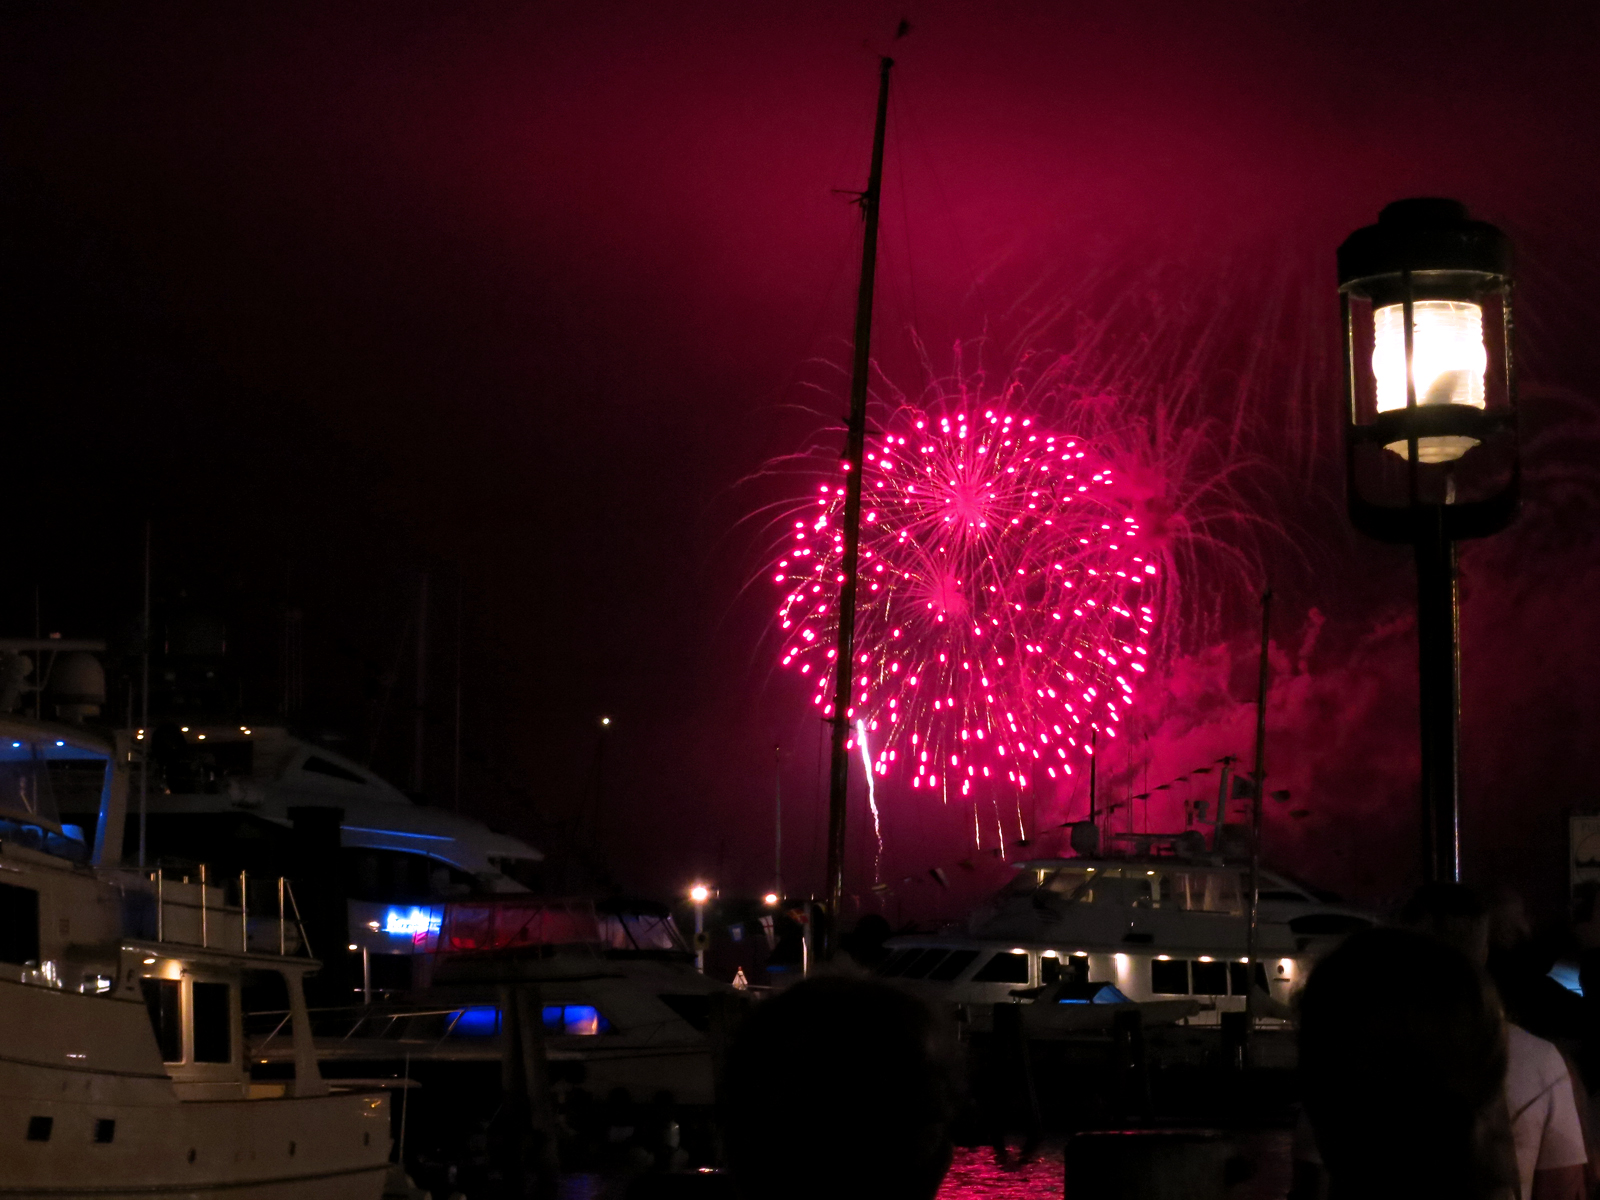 ROCKET'S RED GLARE OVER NEWPORT HARBOR - live. travel. adventure. bless. | Stunning red firework shimmering over Newport Harbor during the 4th of July fireworks display in Newport, RI. Happy 4th of July!